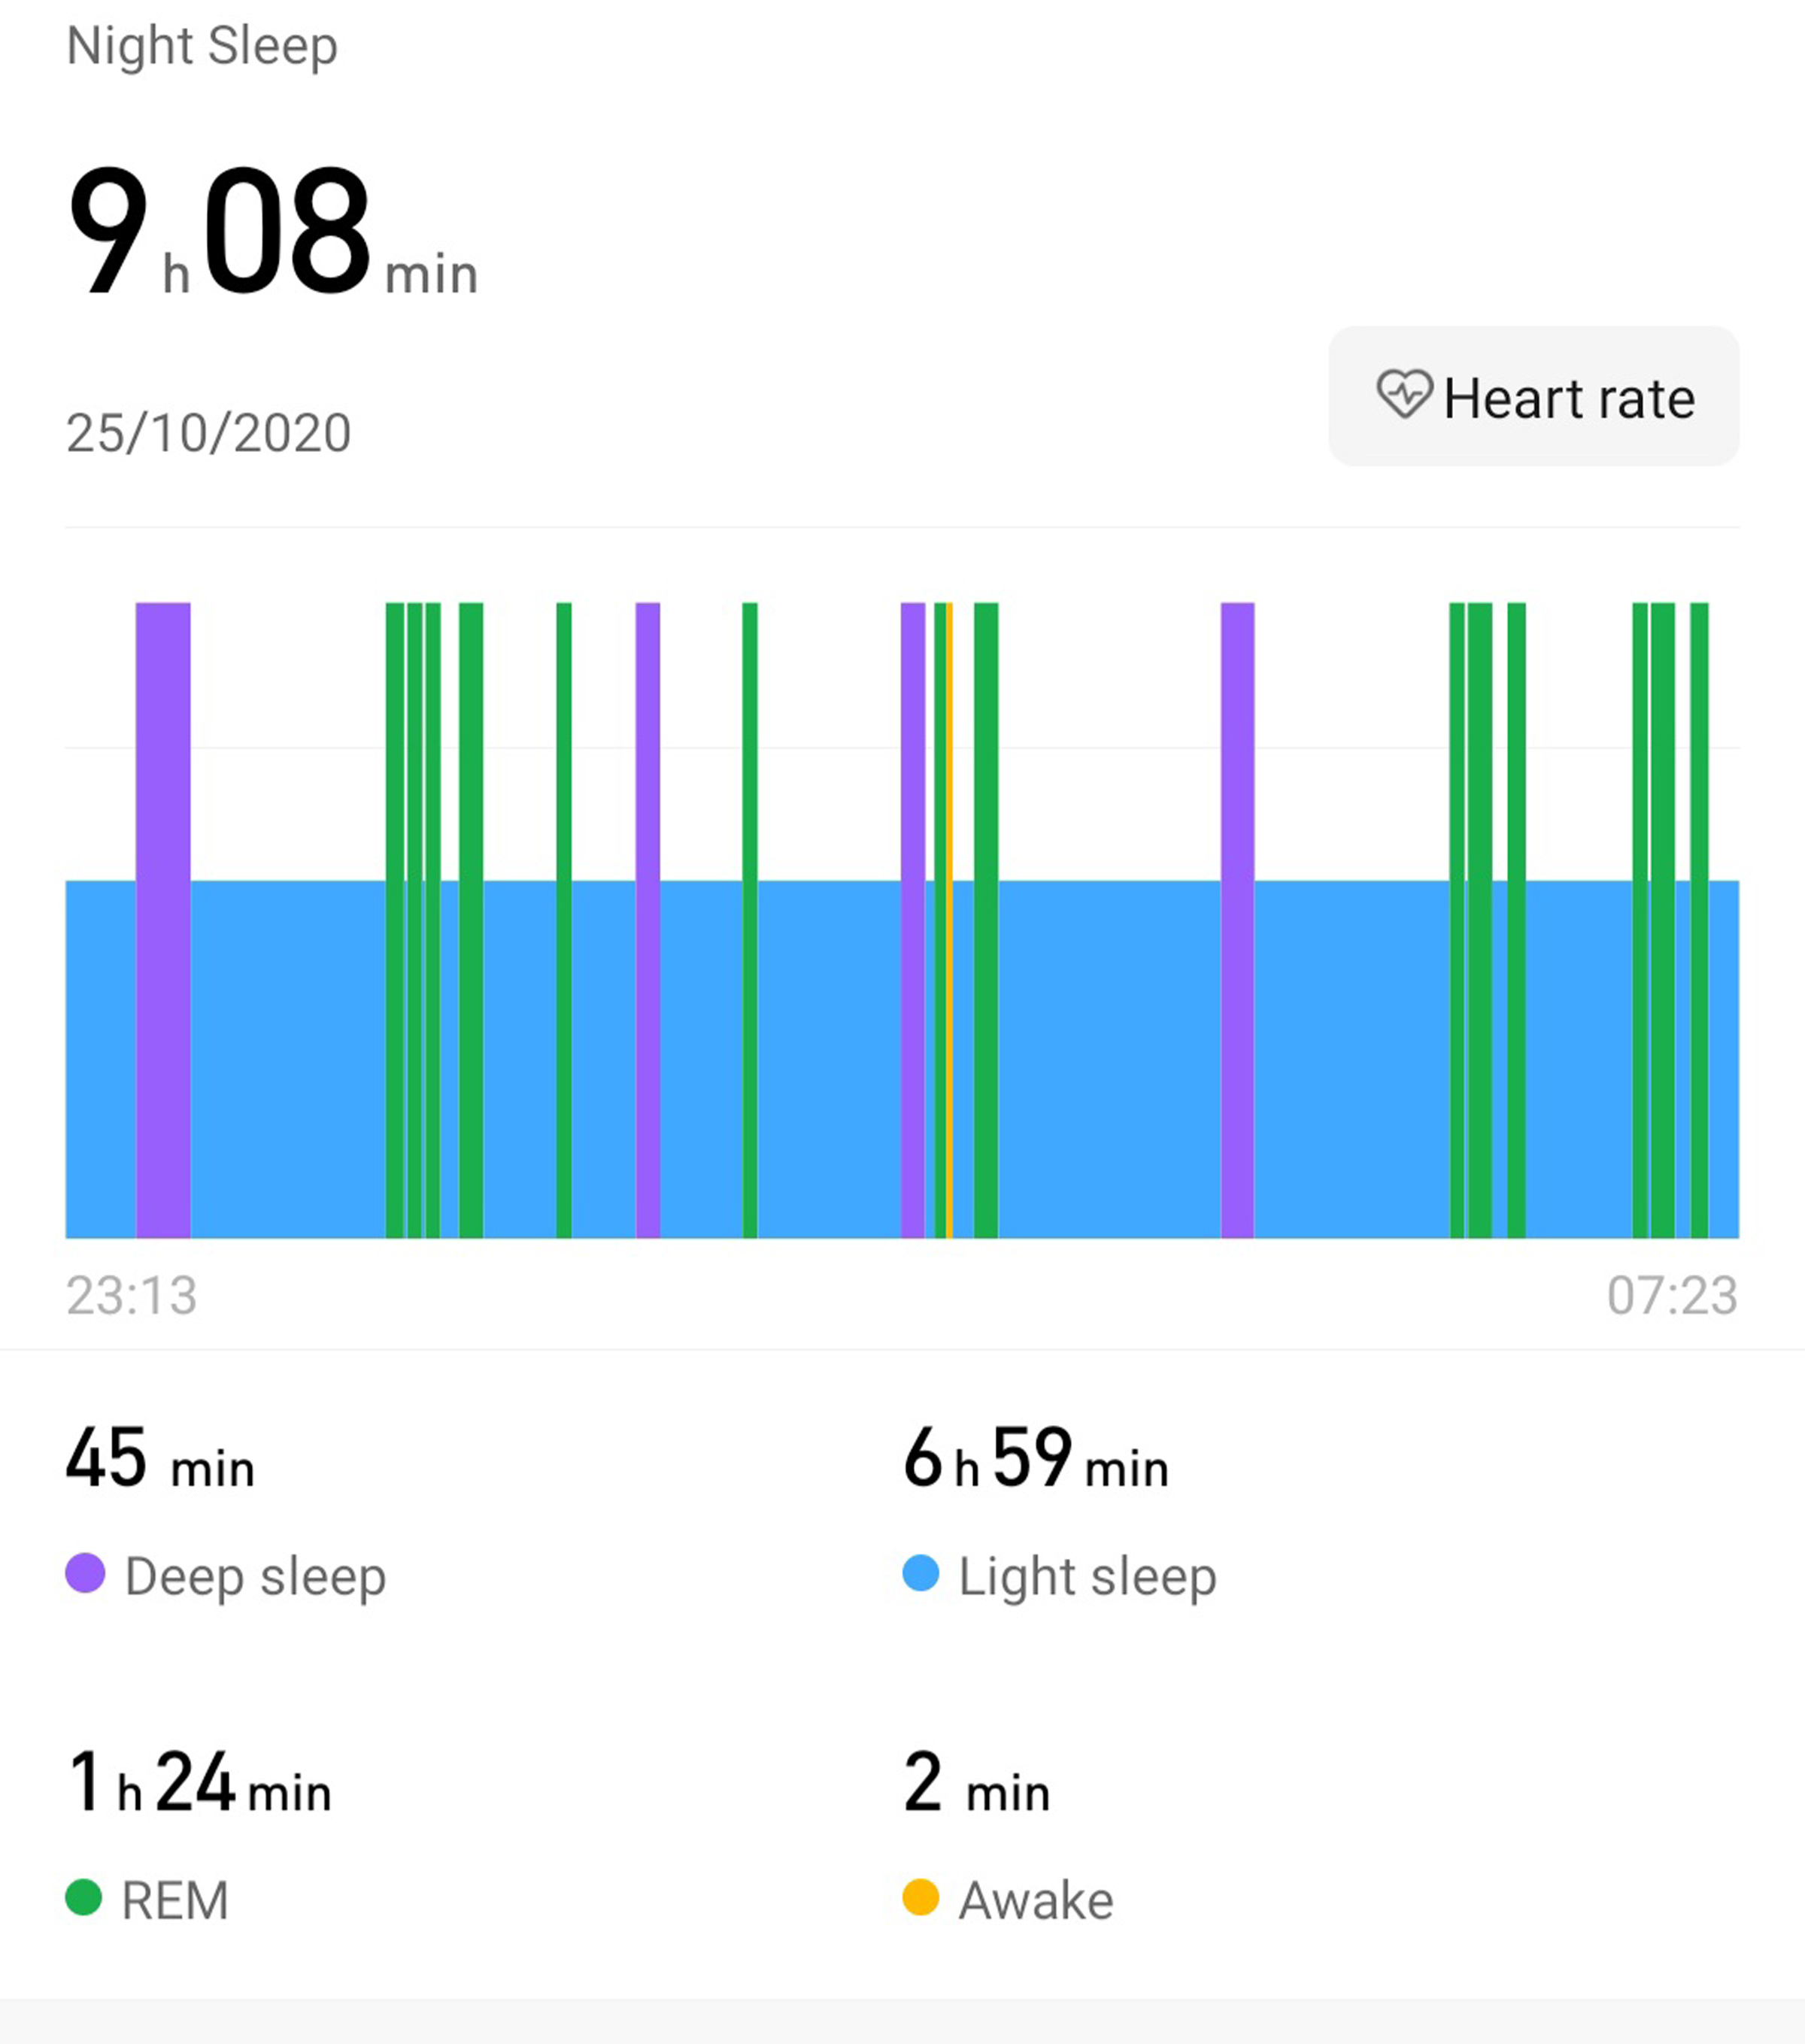 screengrab from fitness tracker showing breakdown of sleep stages